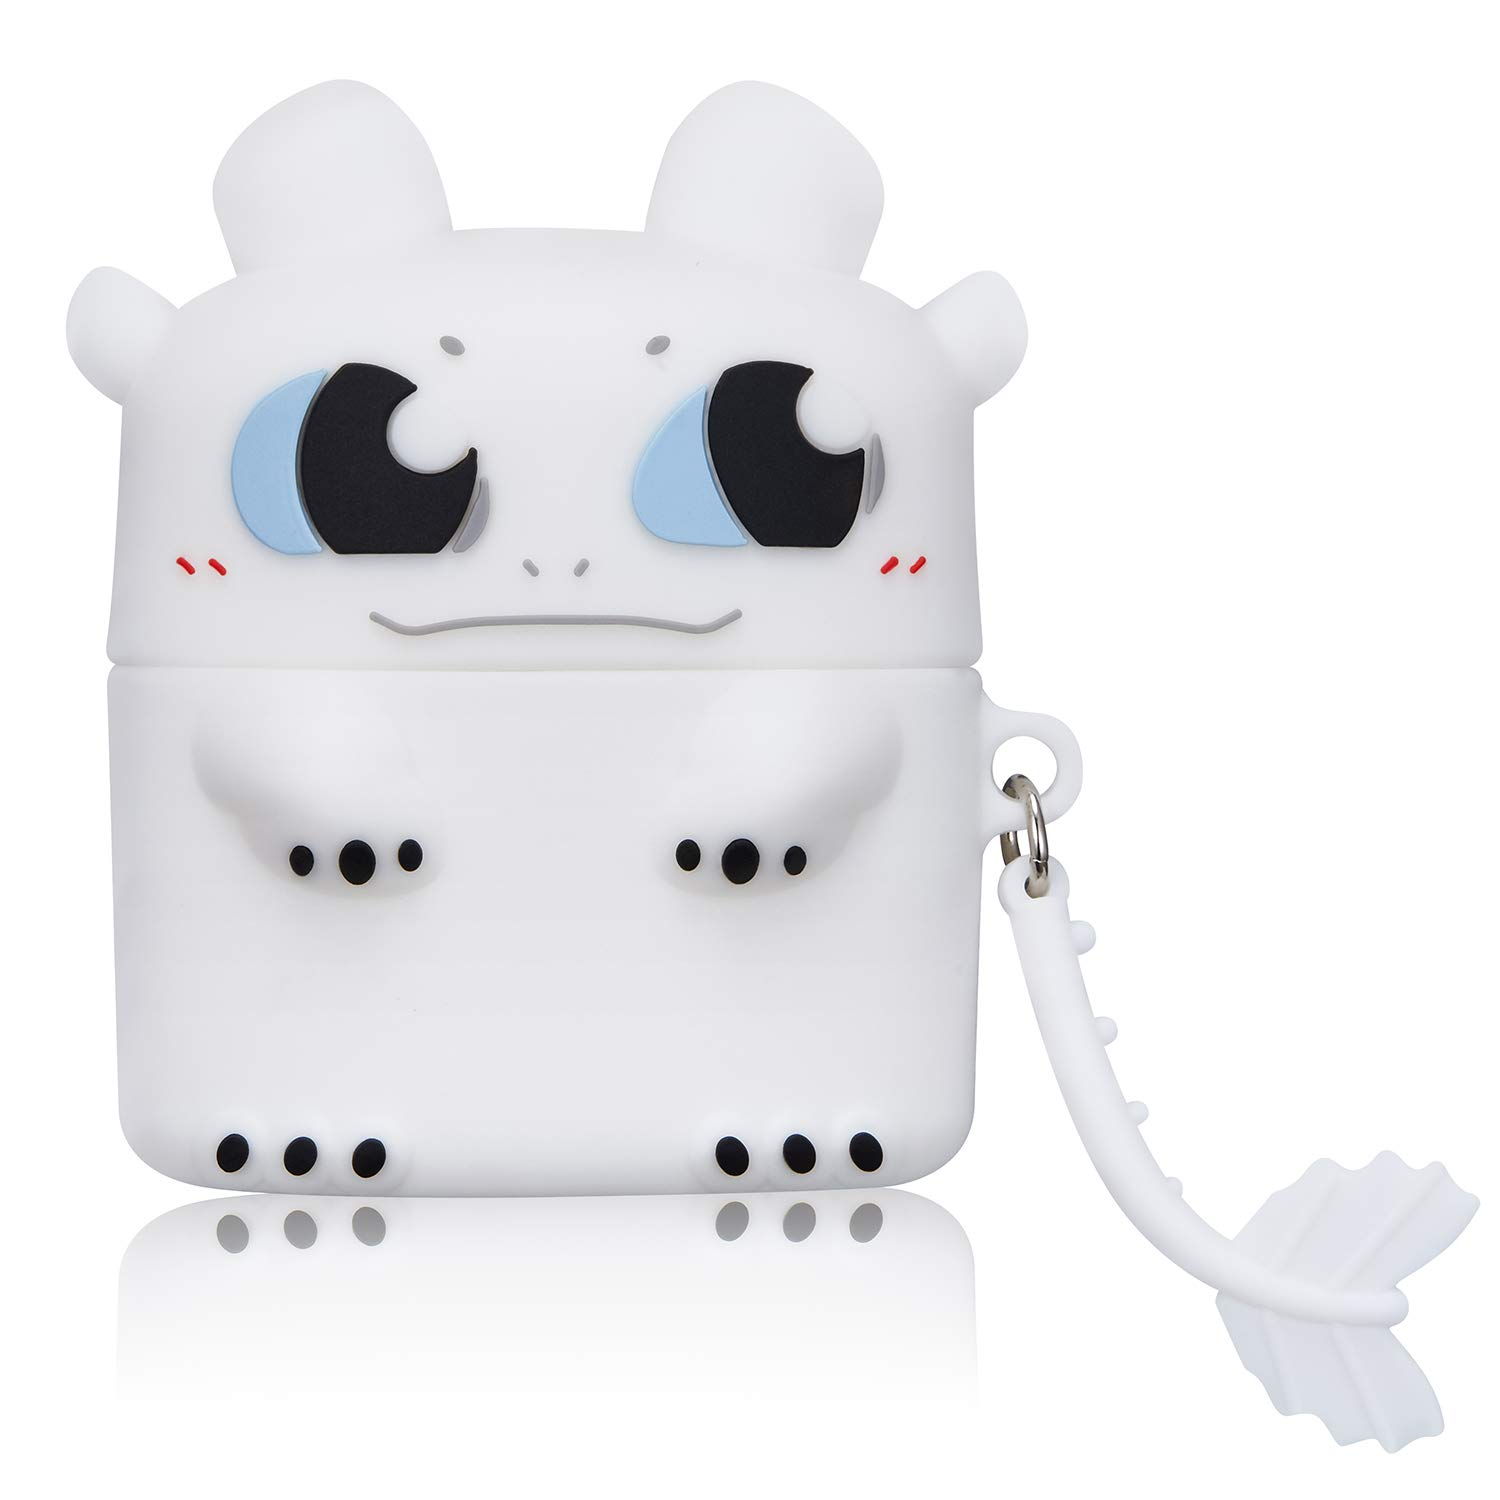 Gift-Hero White Toothless Case for Airpods Pro/for Airpods 3, Cartoon Cute Funny Design for Girls Boys Kids, Unique Carabiner Protective Fun Fashion Character Skin Soft Silicone Cover for Air pods 3